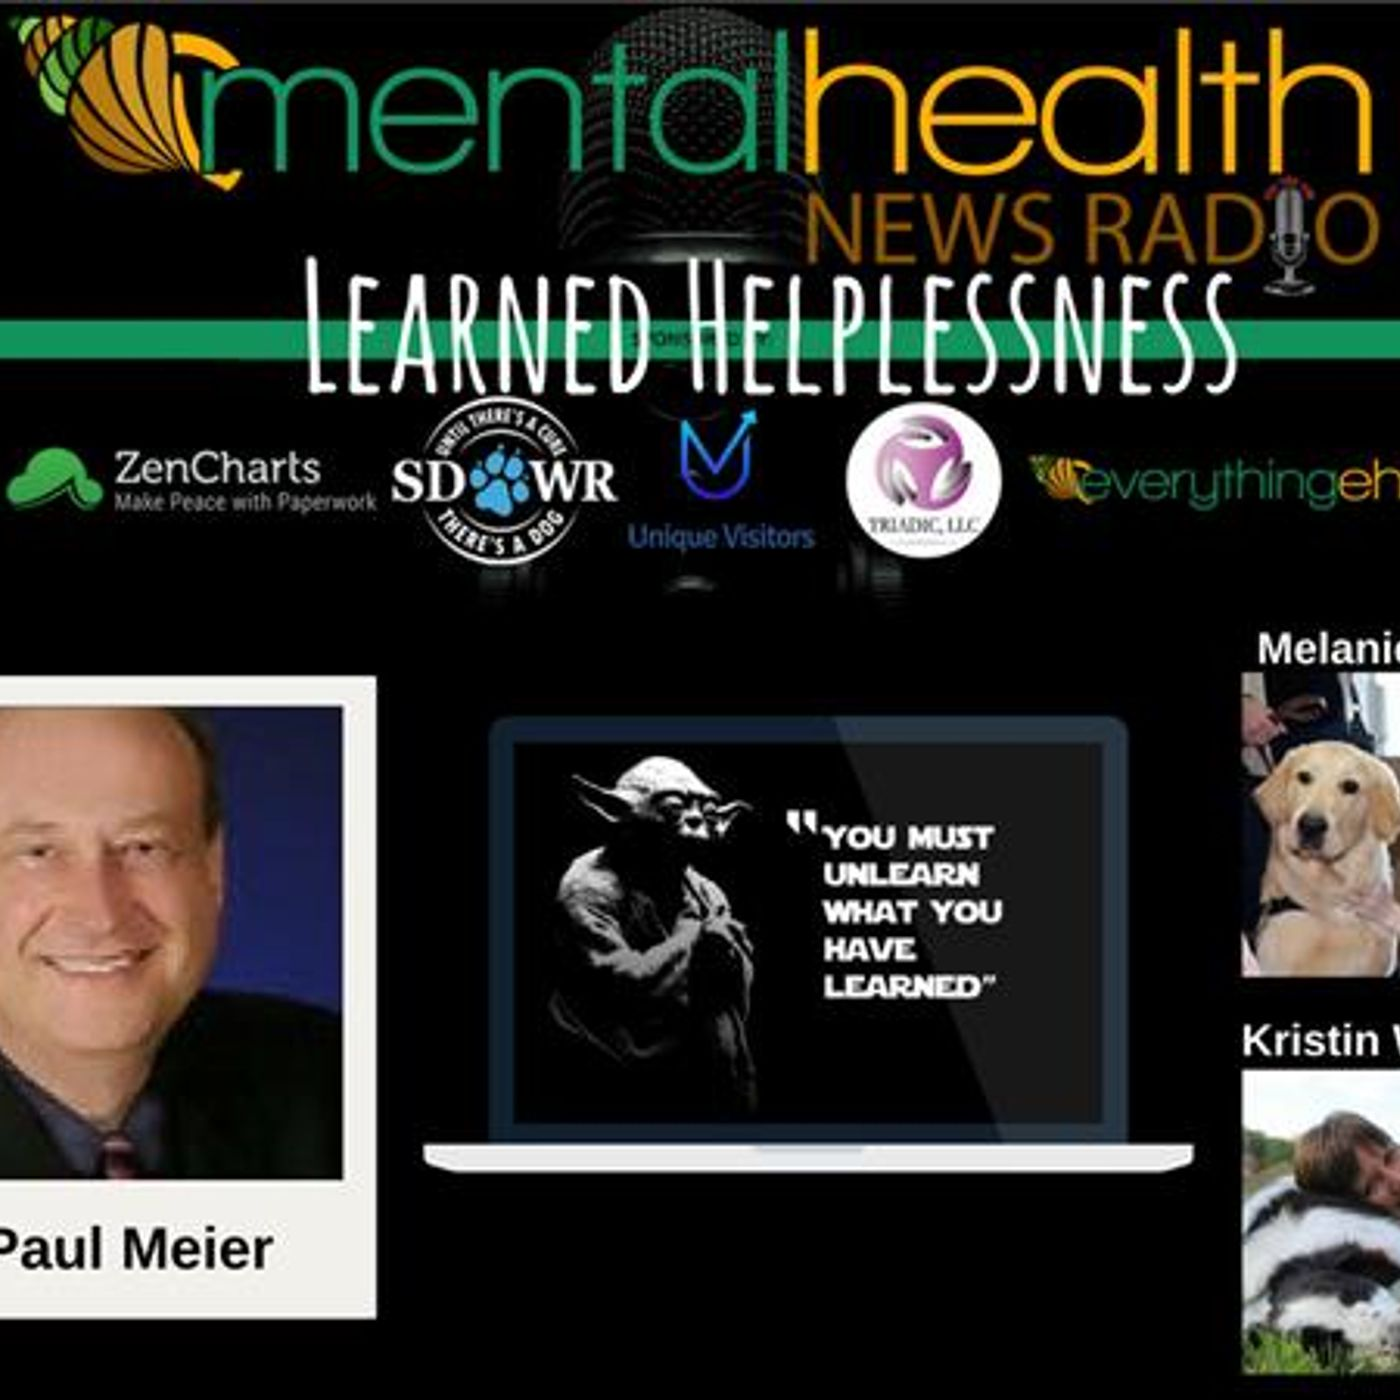 Mental Health News Radio - Round Table Discussions with Dr. Paul Meier: Learned Helplessness